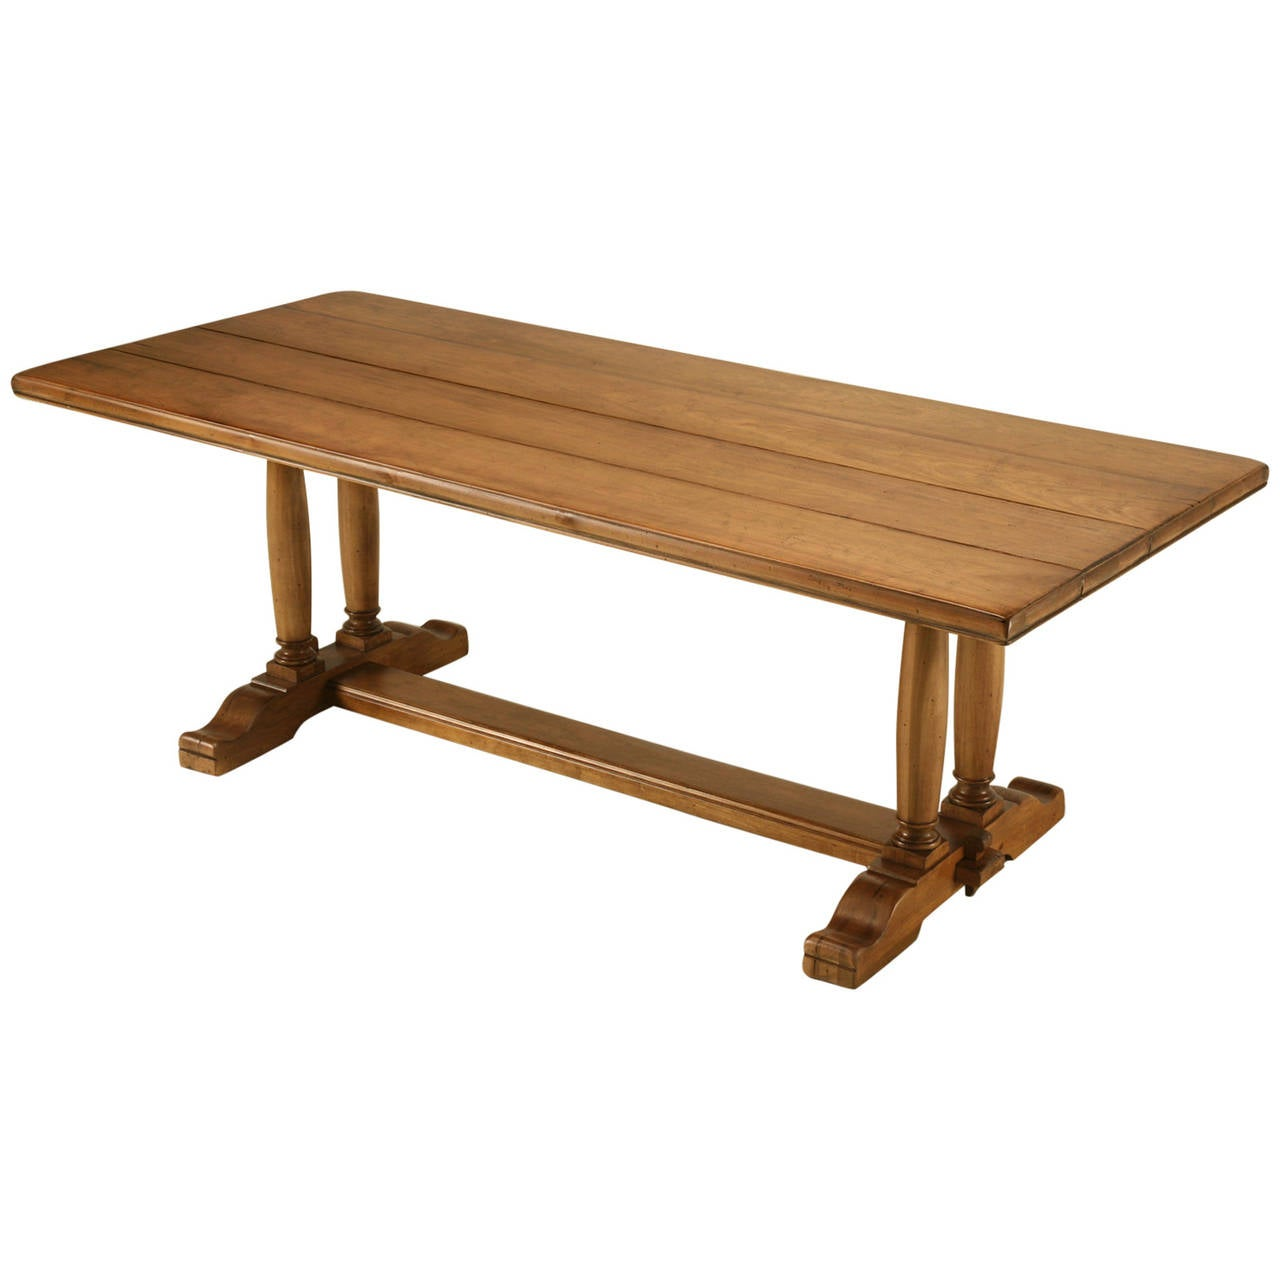 Trestle dining table at 1stdibs Trestle dining table